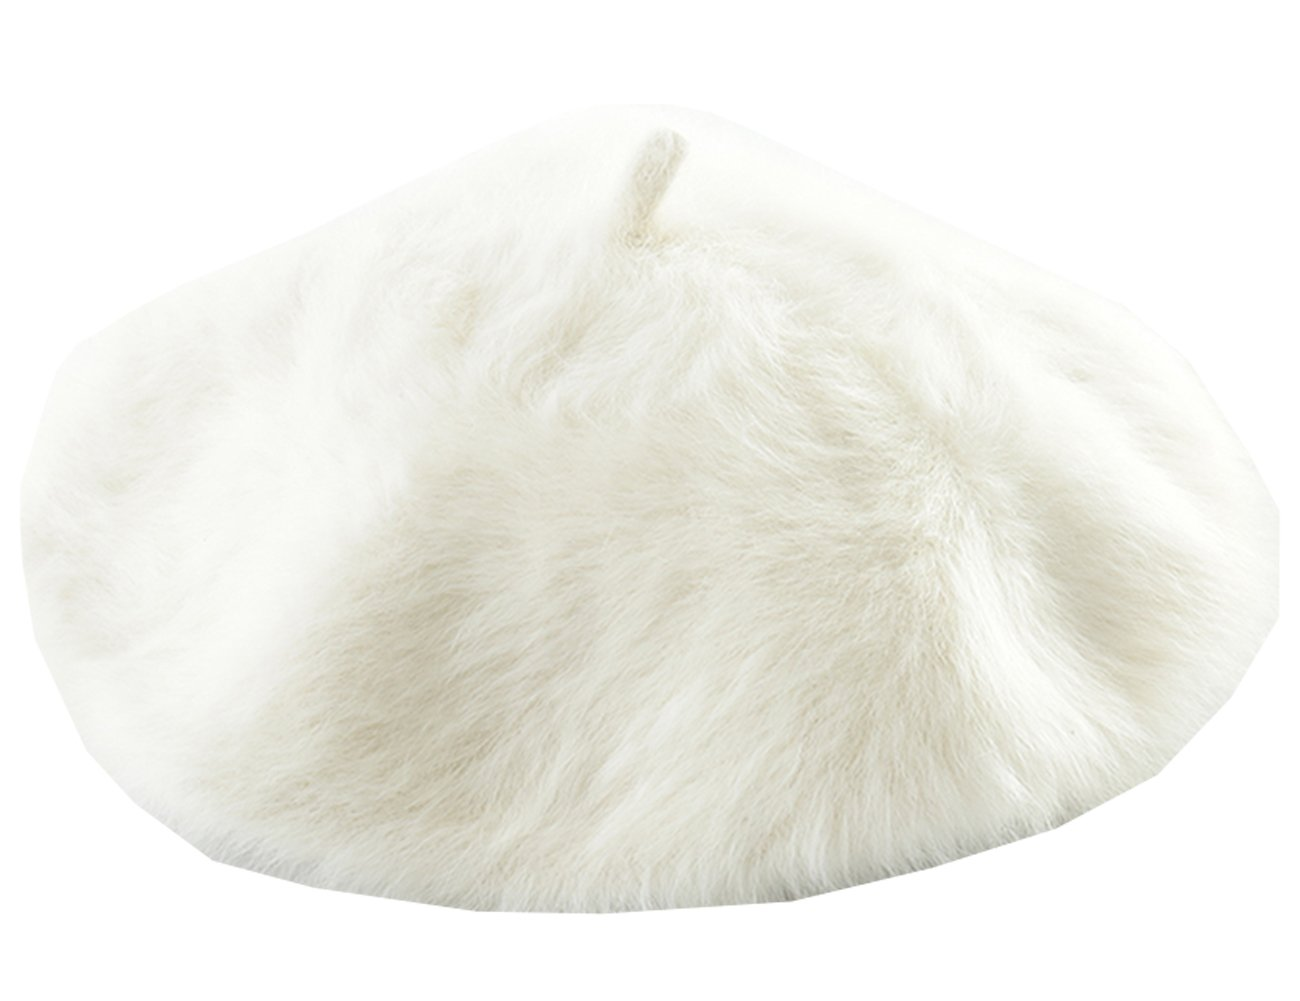 Joyhy Women's Solid Color Fluffy Warm Artist French Beret Hat White